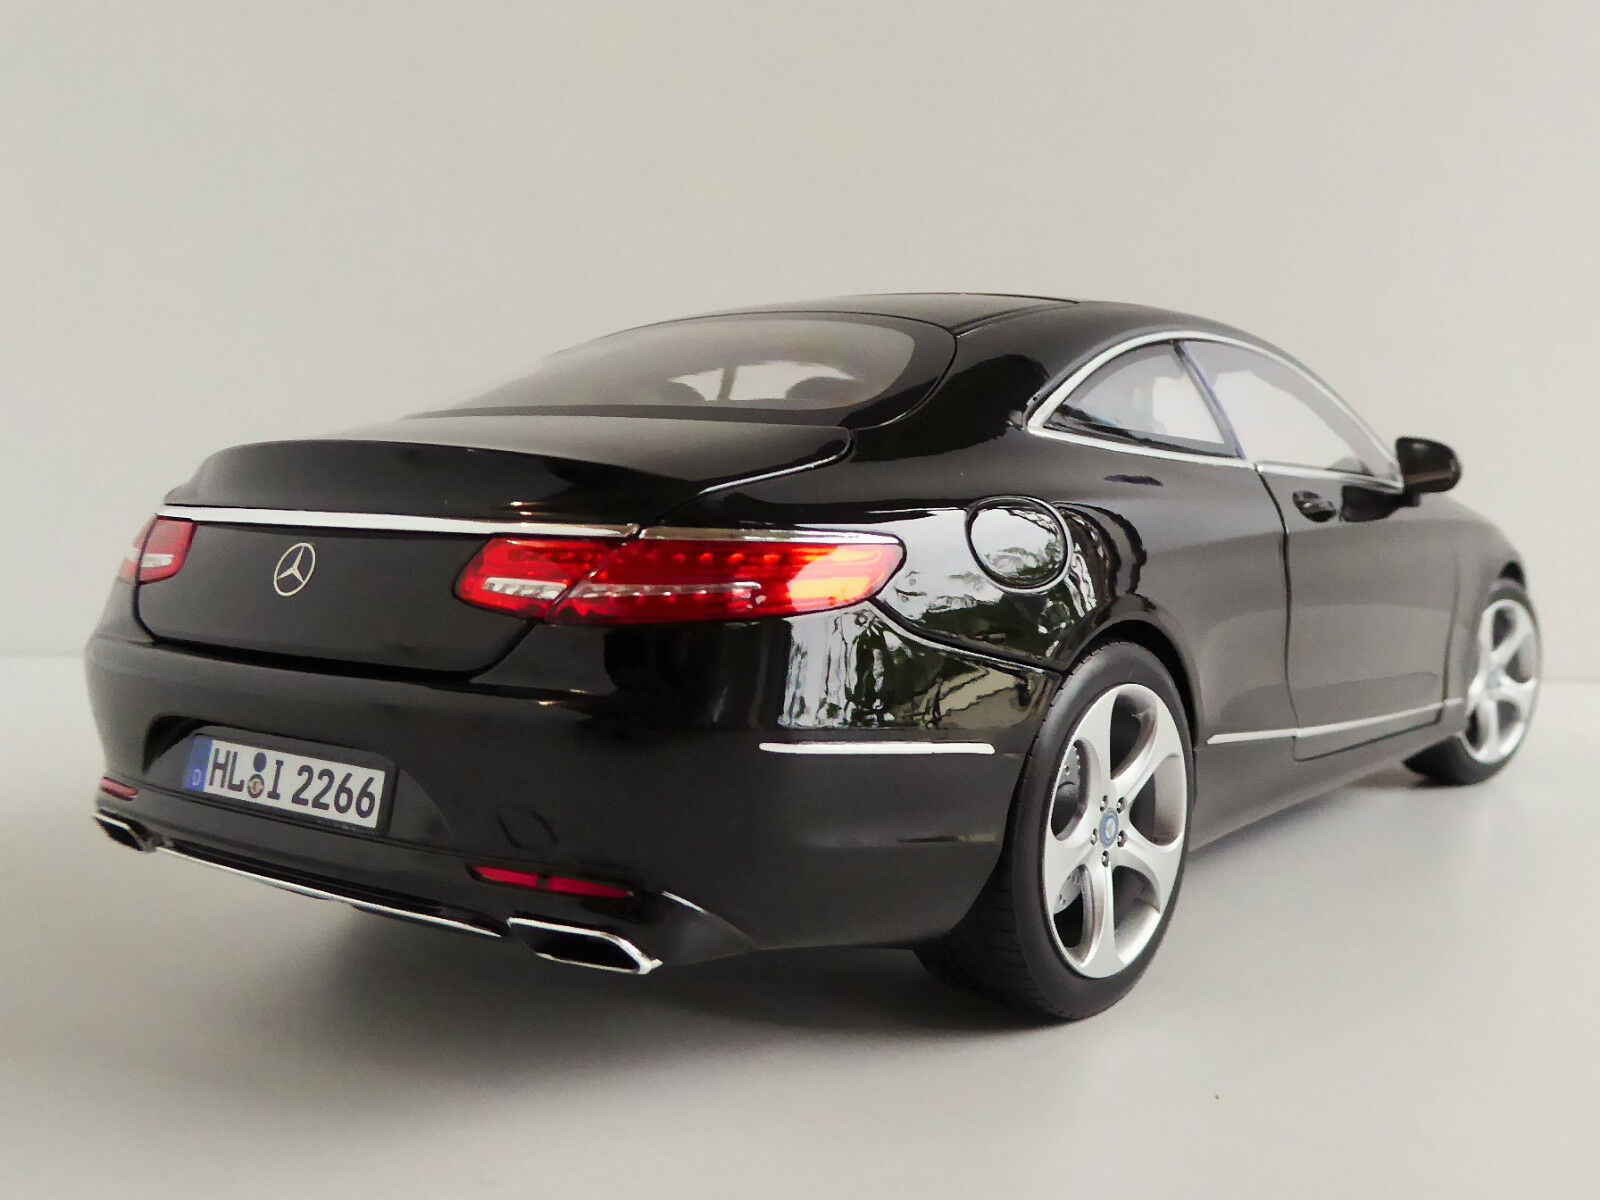 Mercedes-Benz S-Class Coupe 1 18 norev 183482 mercedes 218 clase s 217 s 500